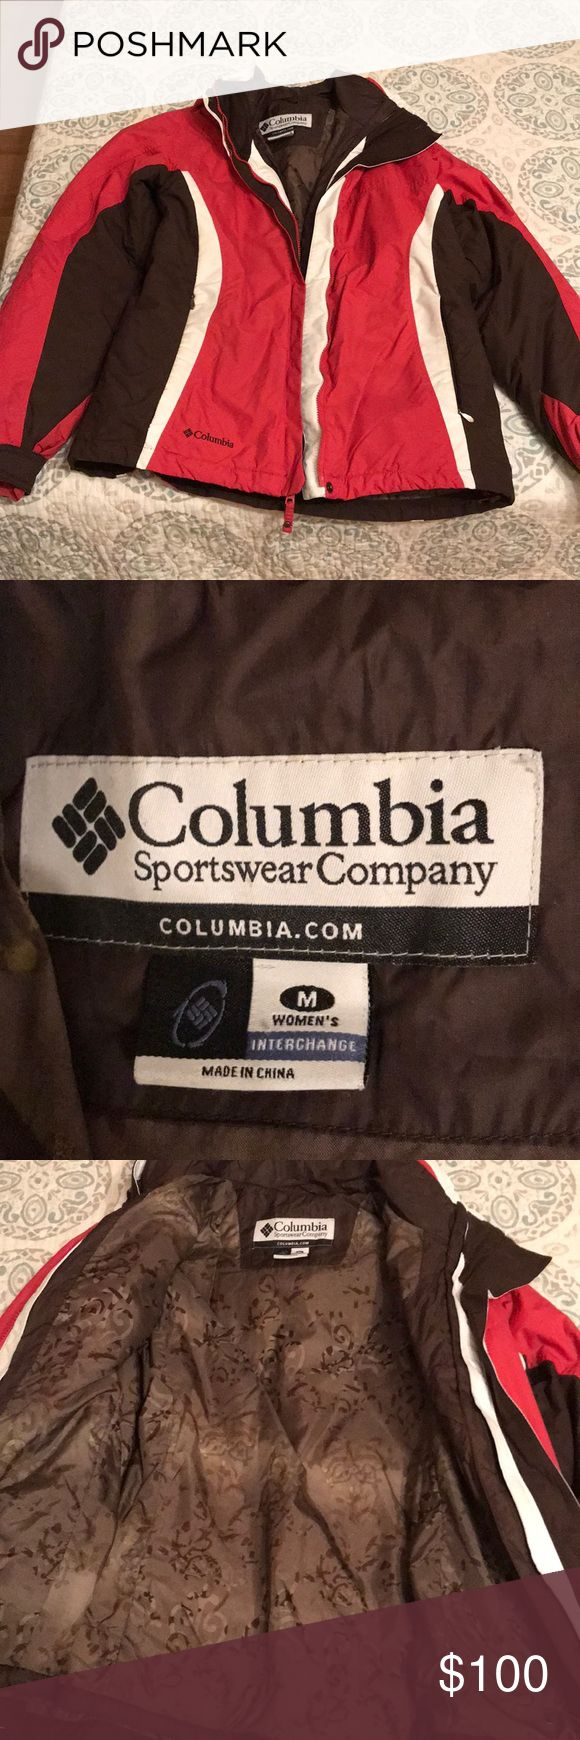 Columbia Interchange Coat size Medium This coat is pink and brown. You can detach the hood and you can detach the inner liner from the outer for the fall or spring. I recently had it dry cleaned so it is like new. All of the zippers work and there are no stains or rips. Columbia Jackets & Coats Utility Jackets